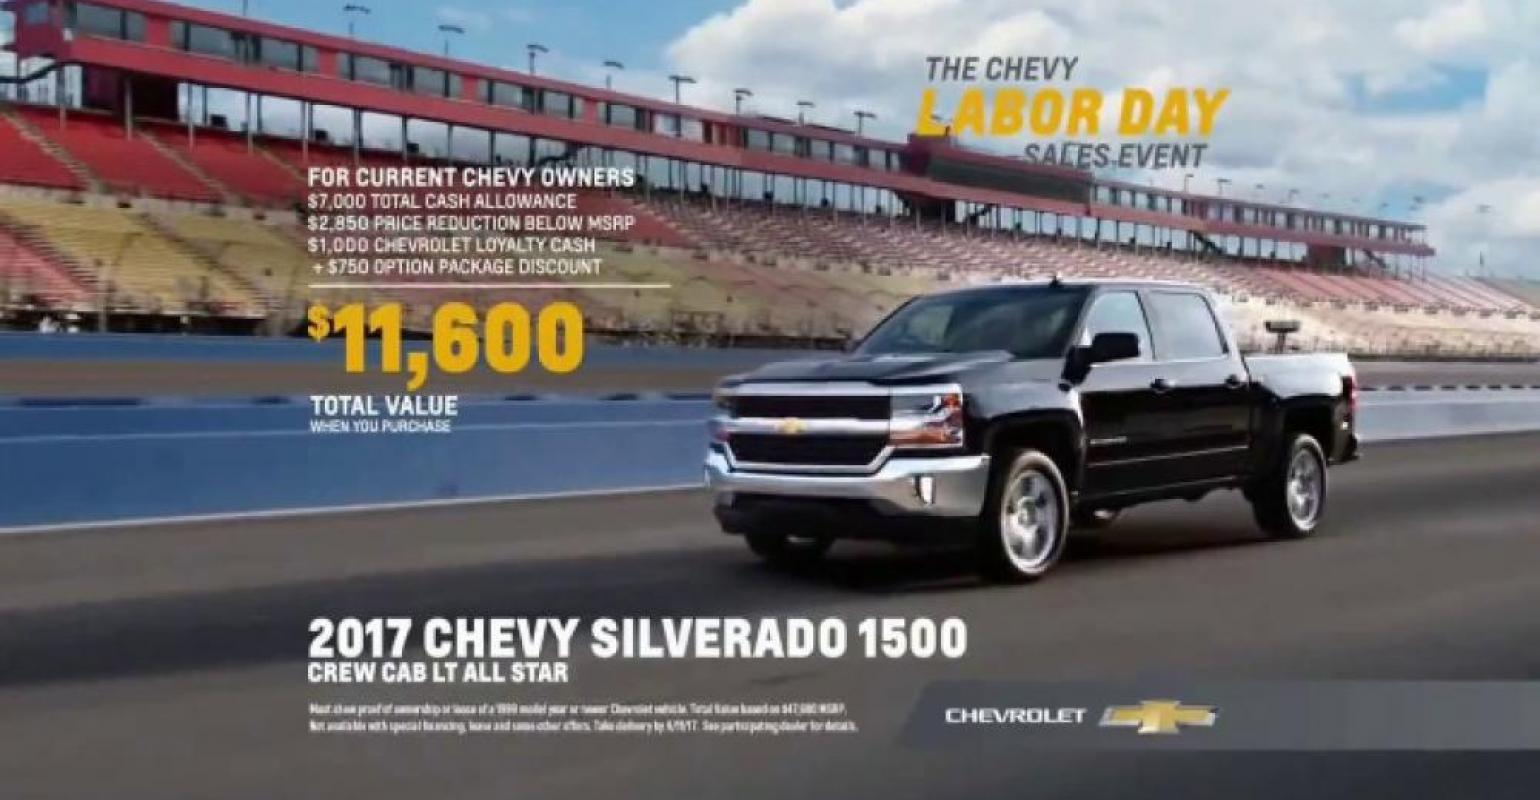 Best Car Ads: 9 Campaigns From s to Today - ShearComfort Automotive Blog